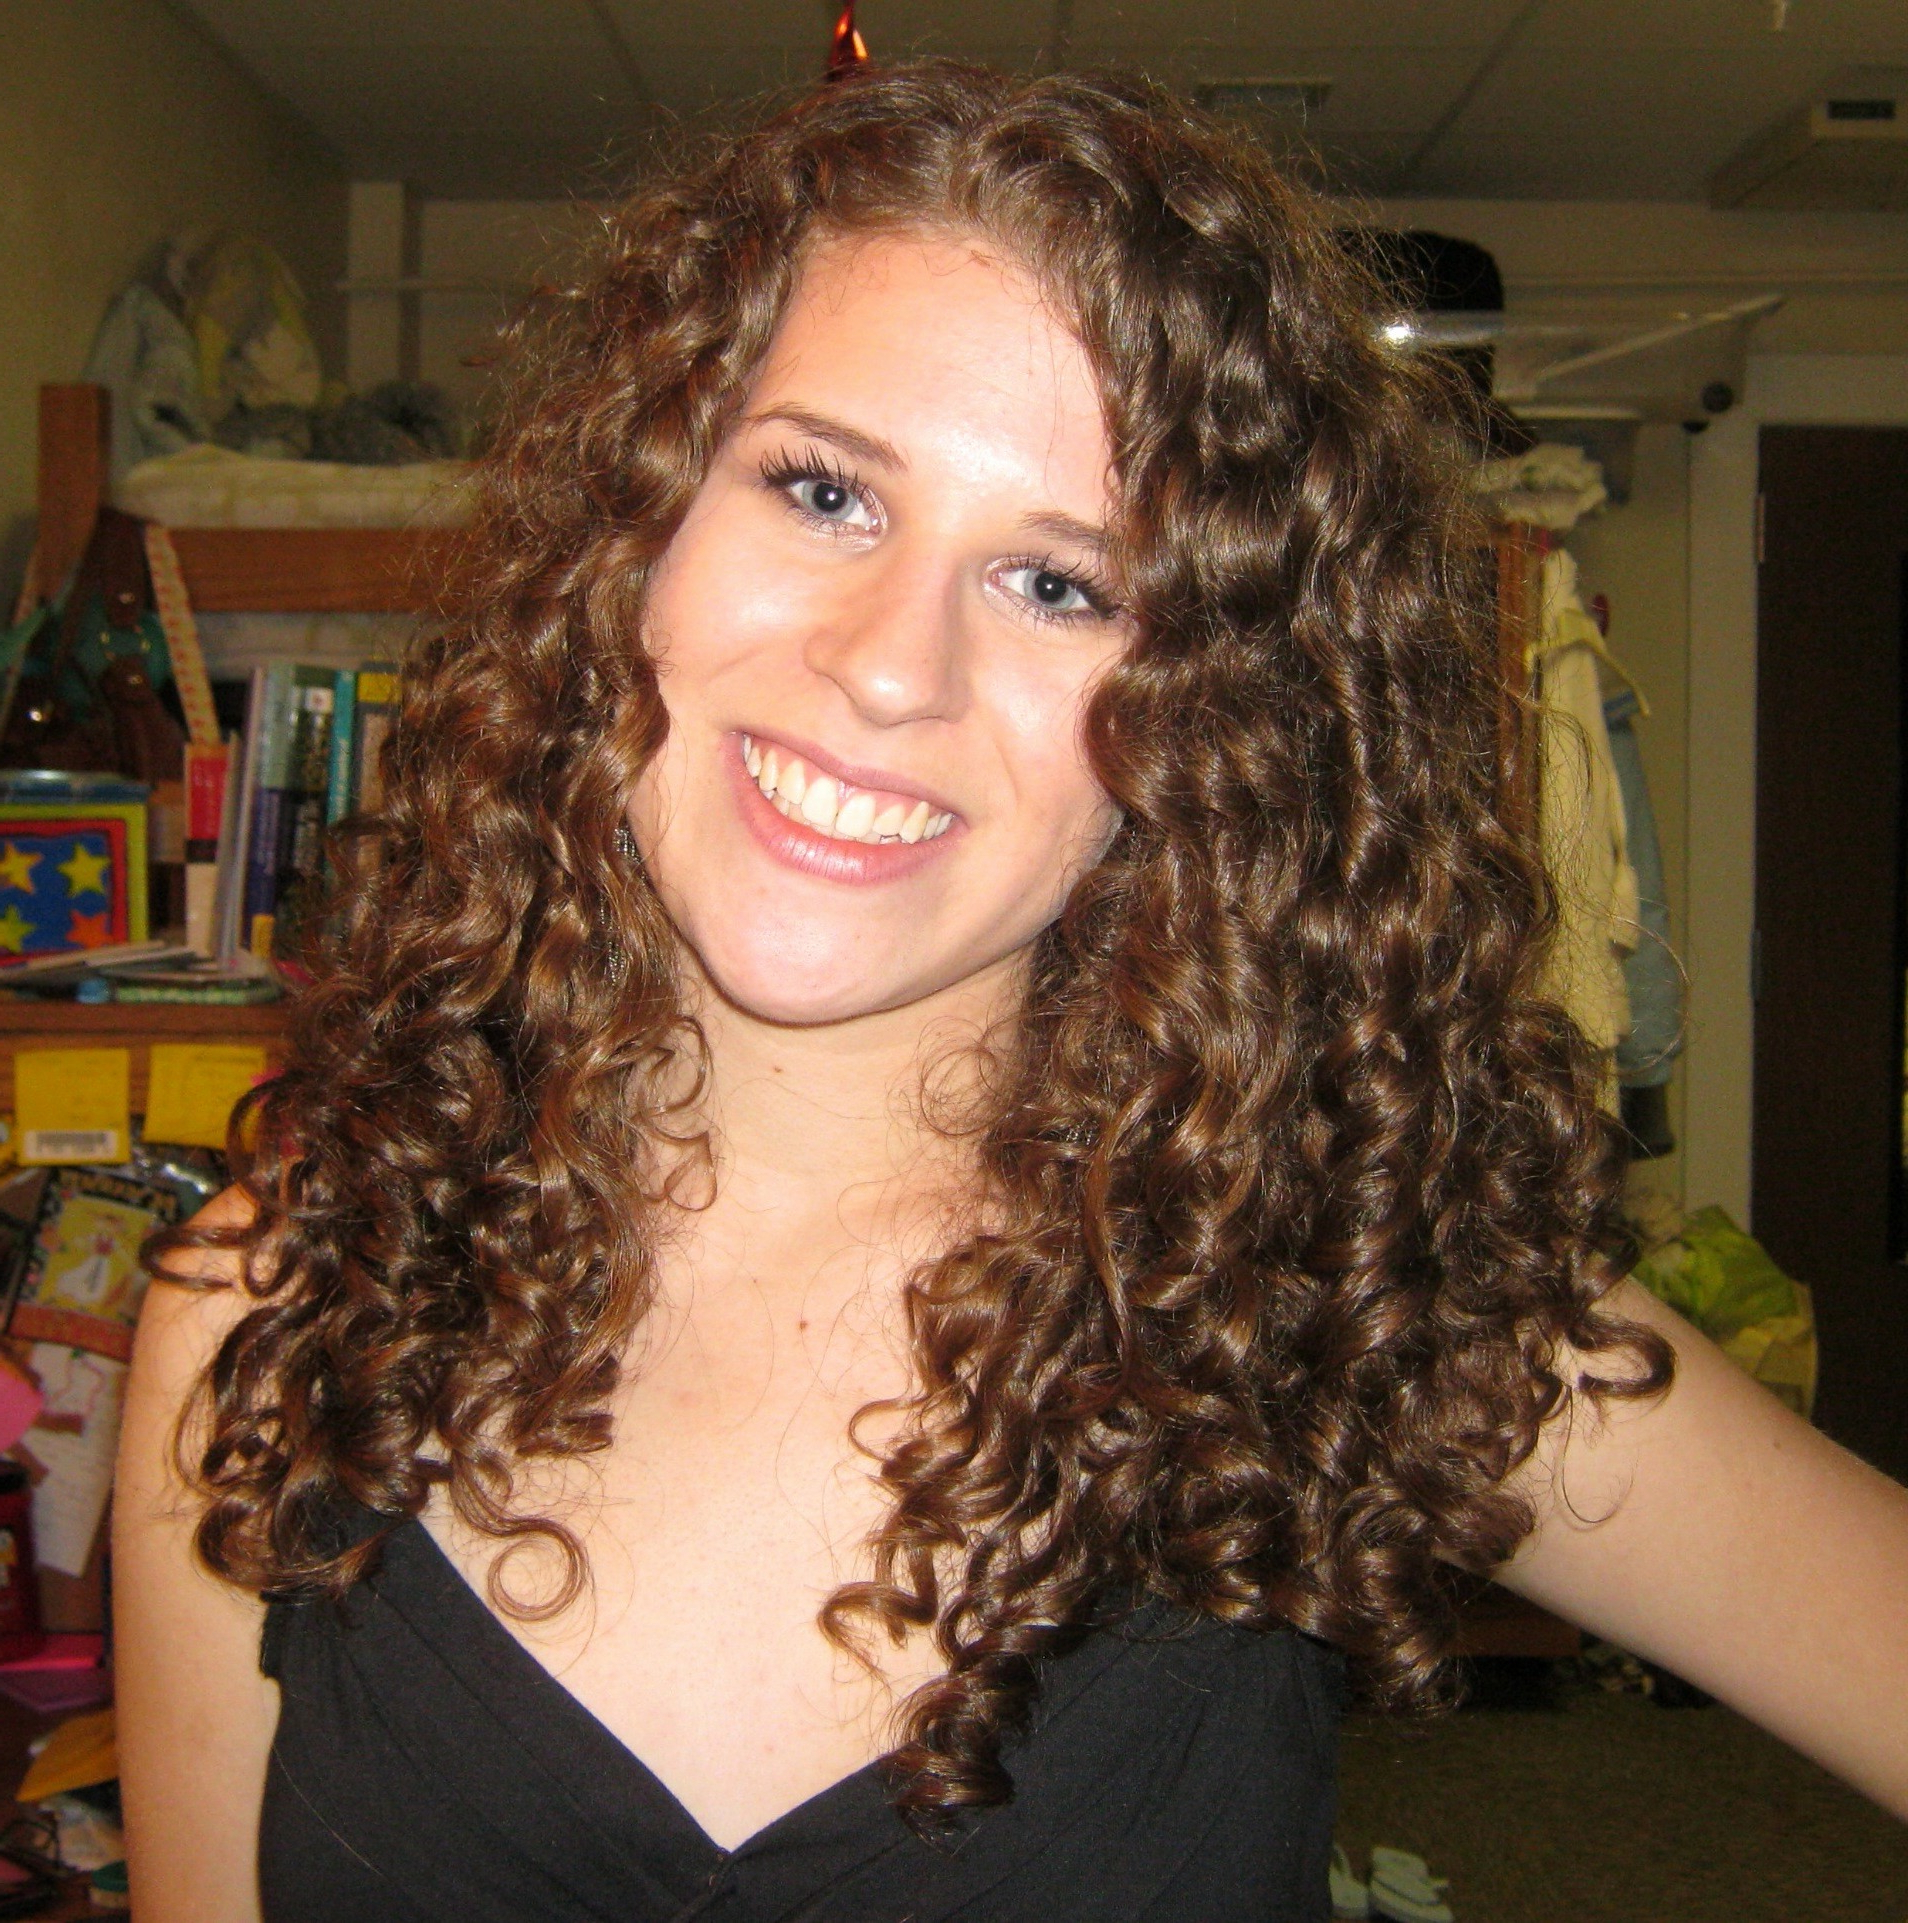 Most Current Cute And Curly Mohawk Hairstyles With Girl Hairstyles Images Beautiful Cute Curly Mohawk Hairstyles For (View 7 of 20)